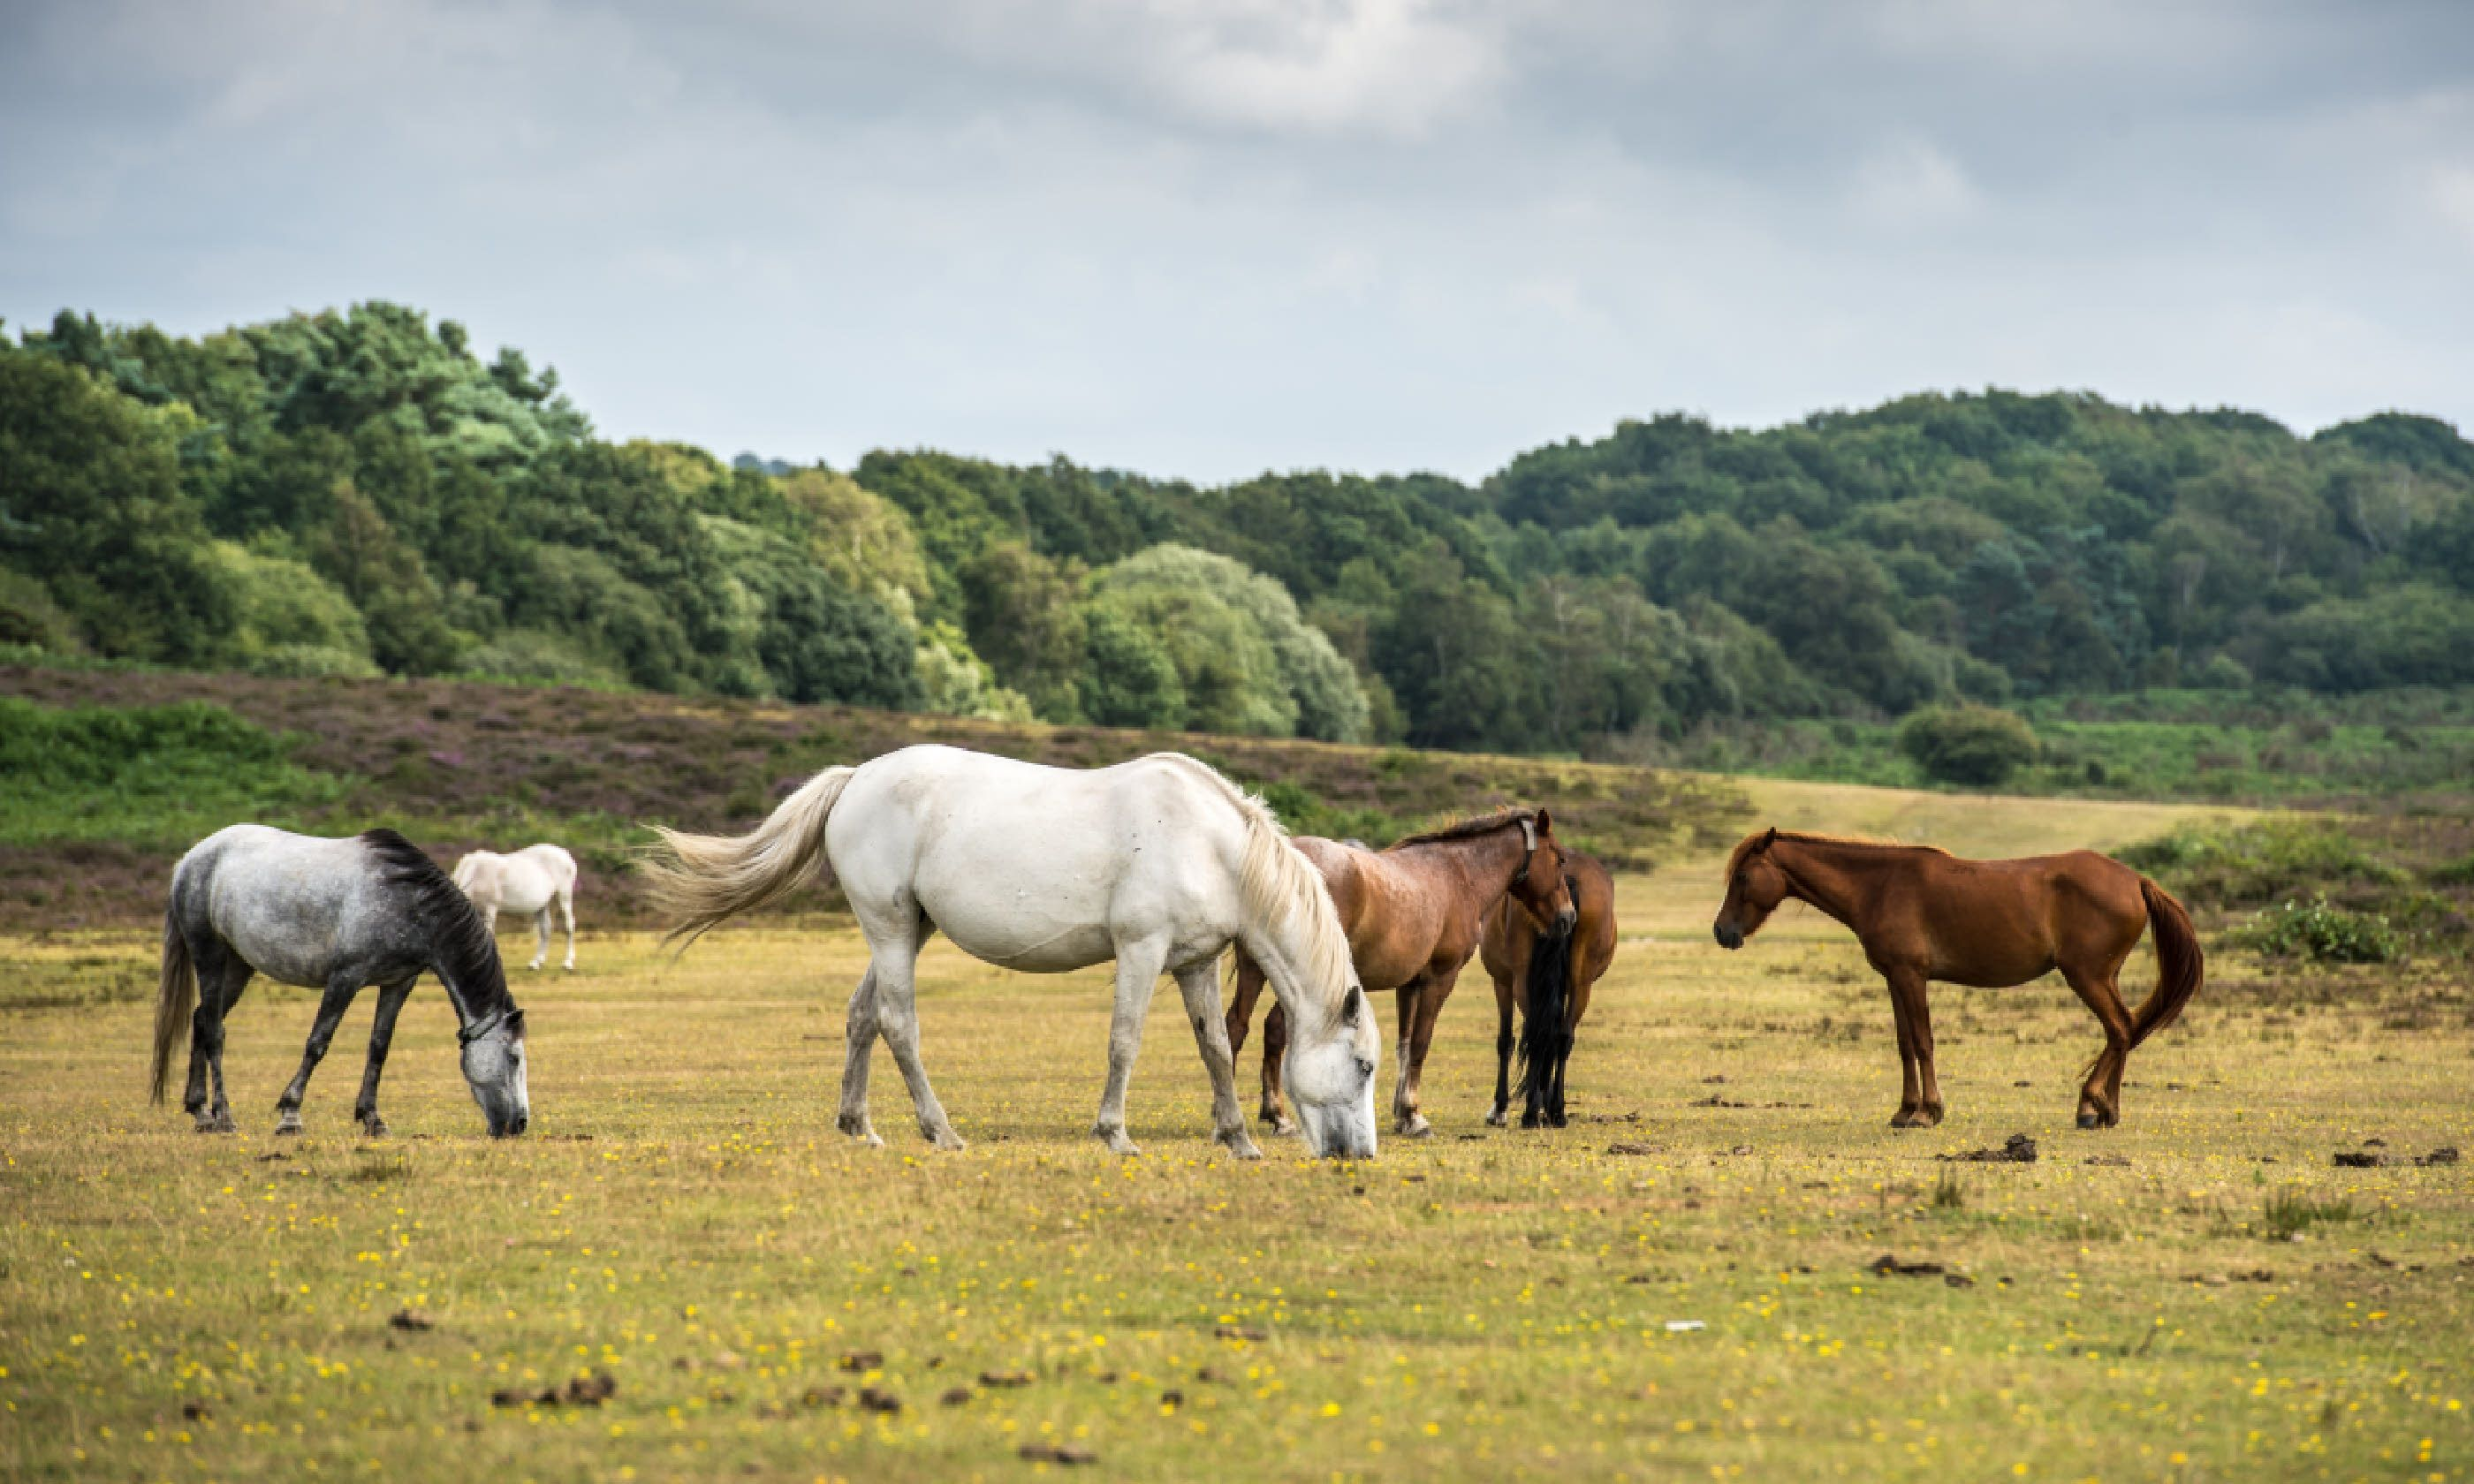 Ponies in New Forest (Shutterstock)